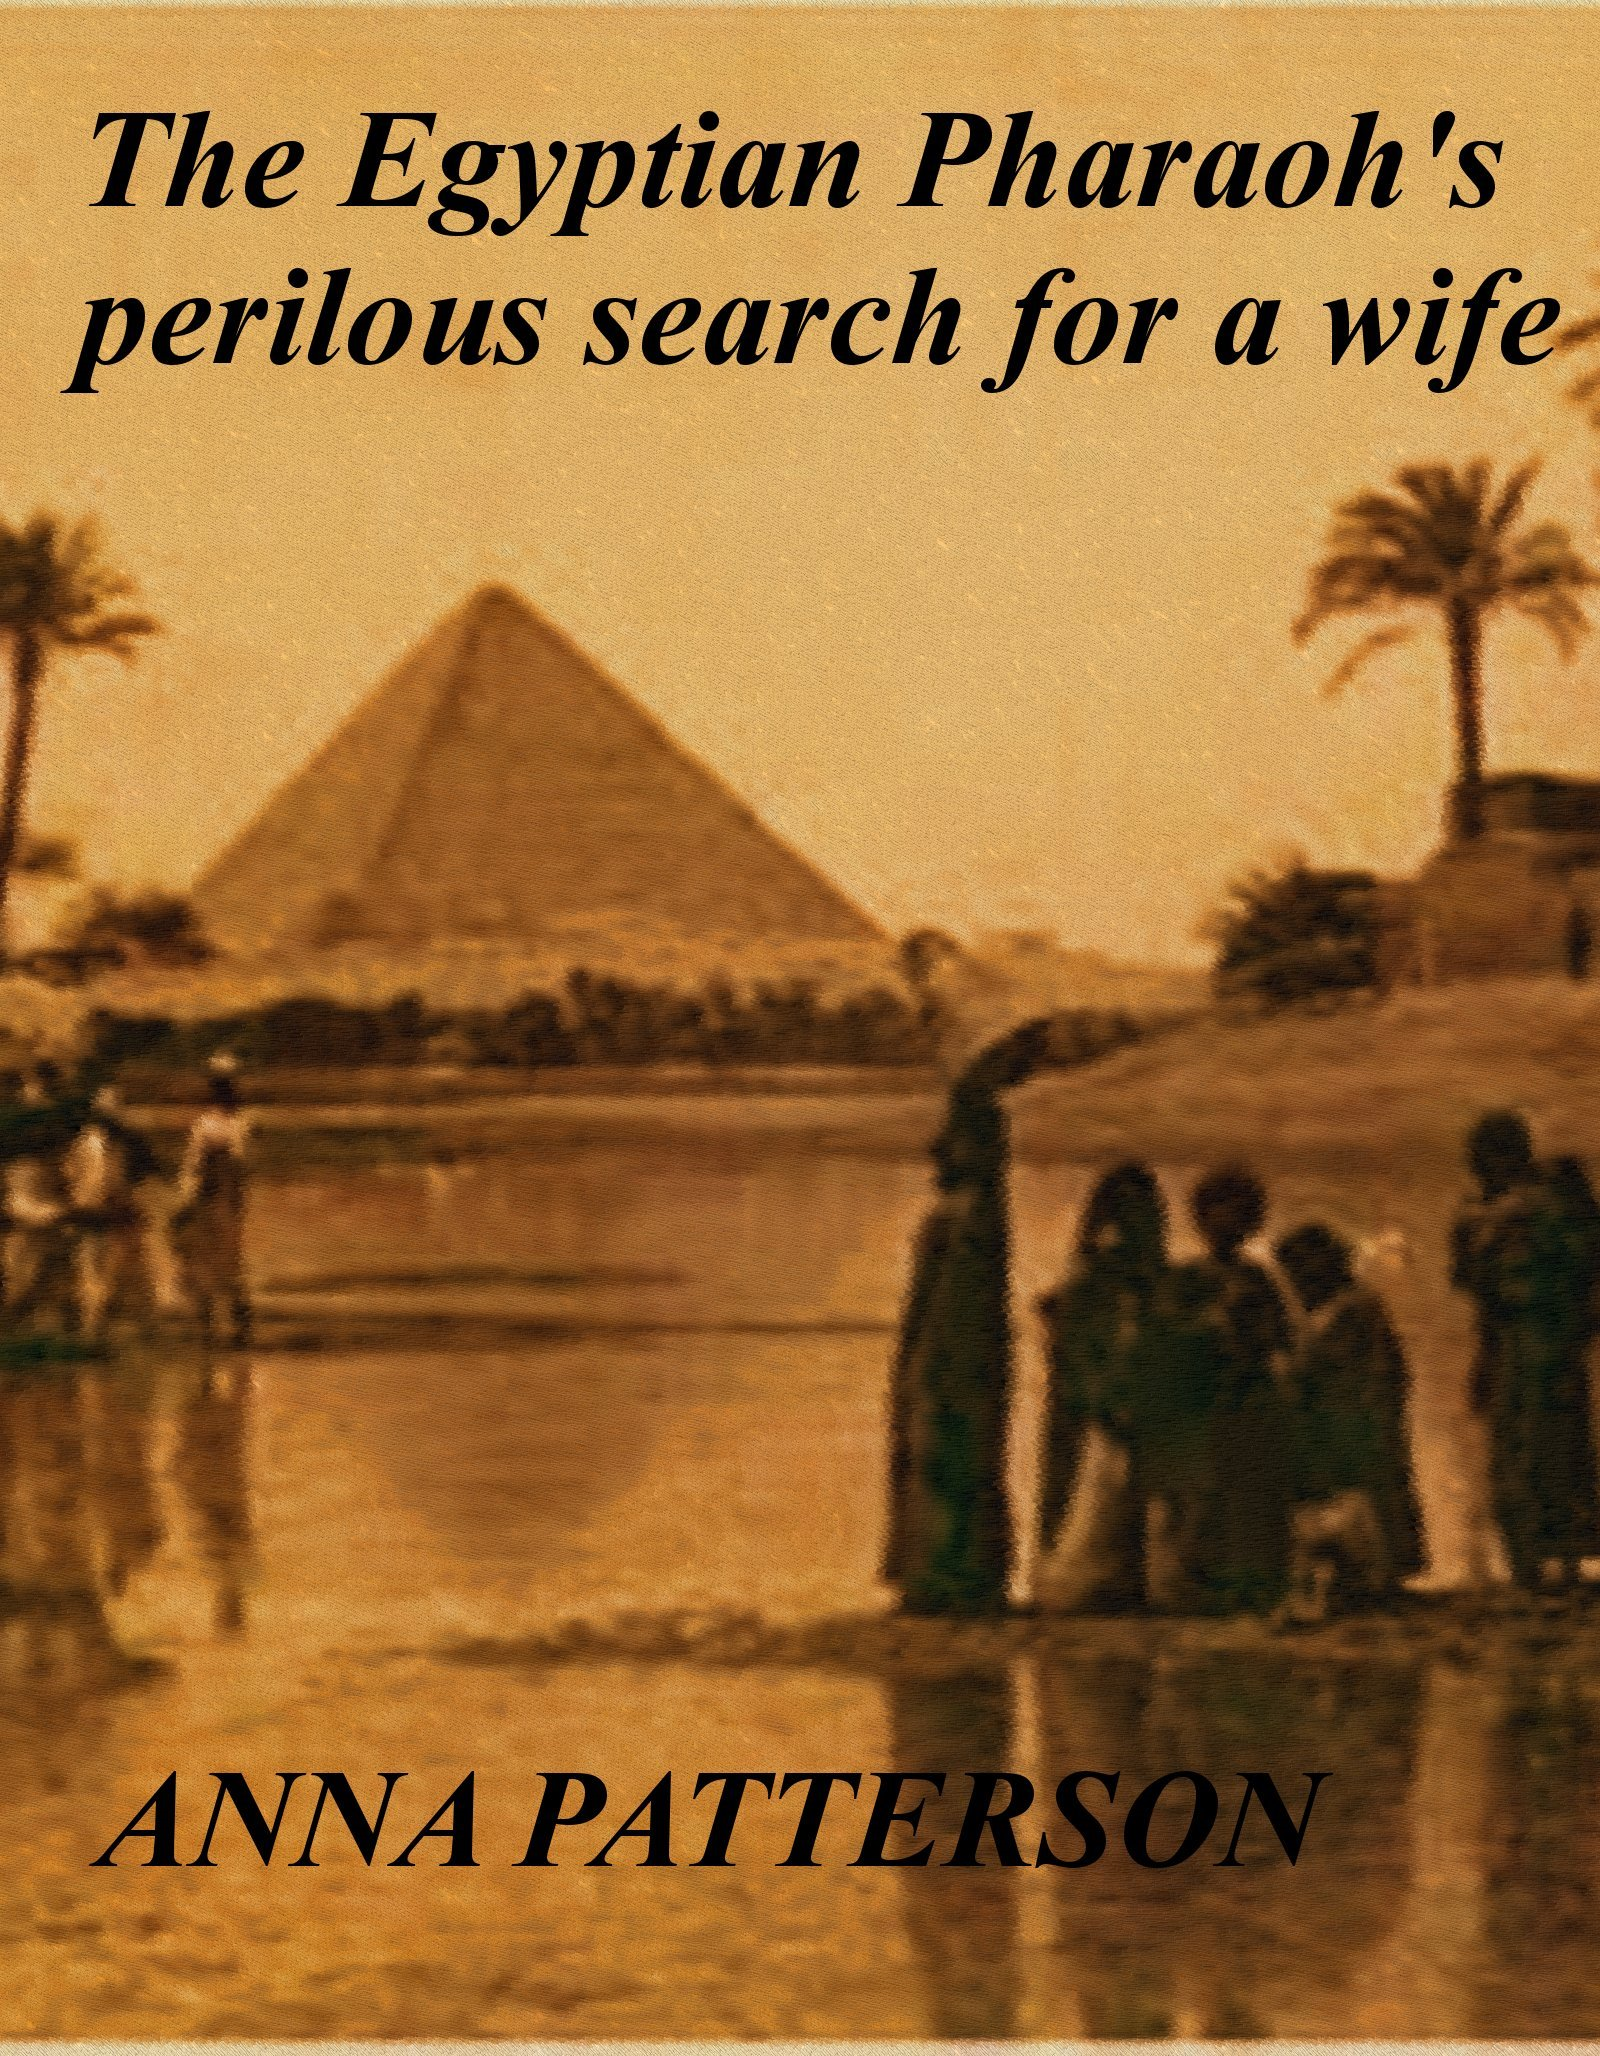 The Egyptian Pharaoh's perilous search for a wife